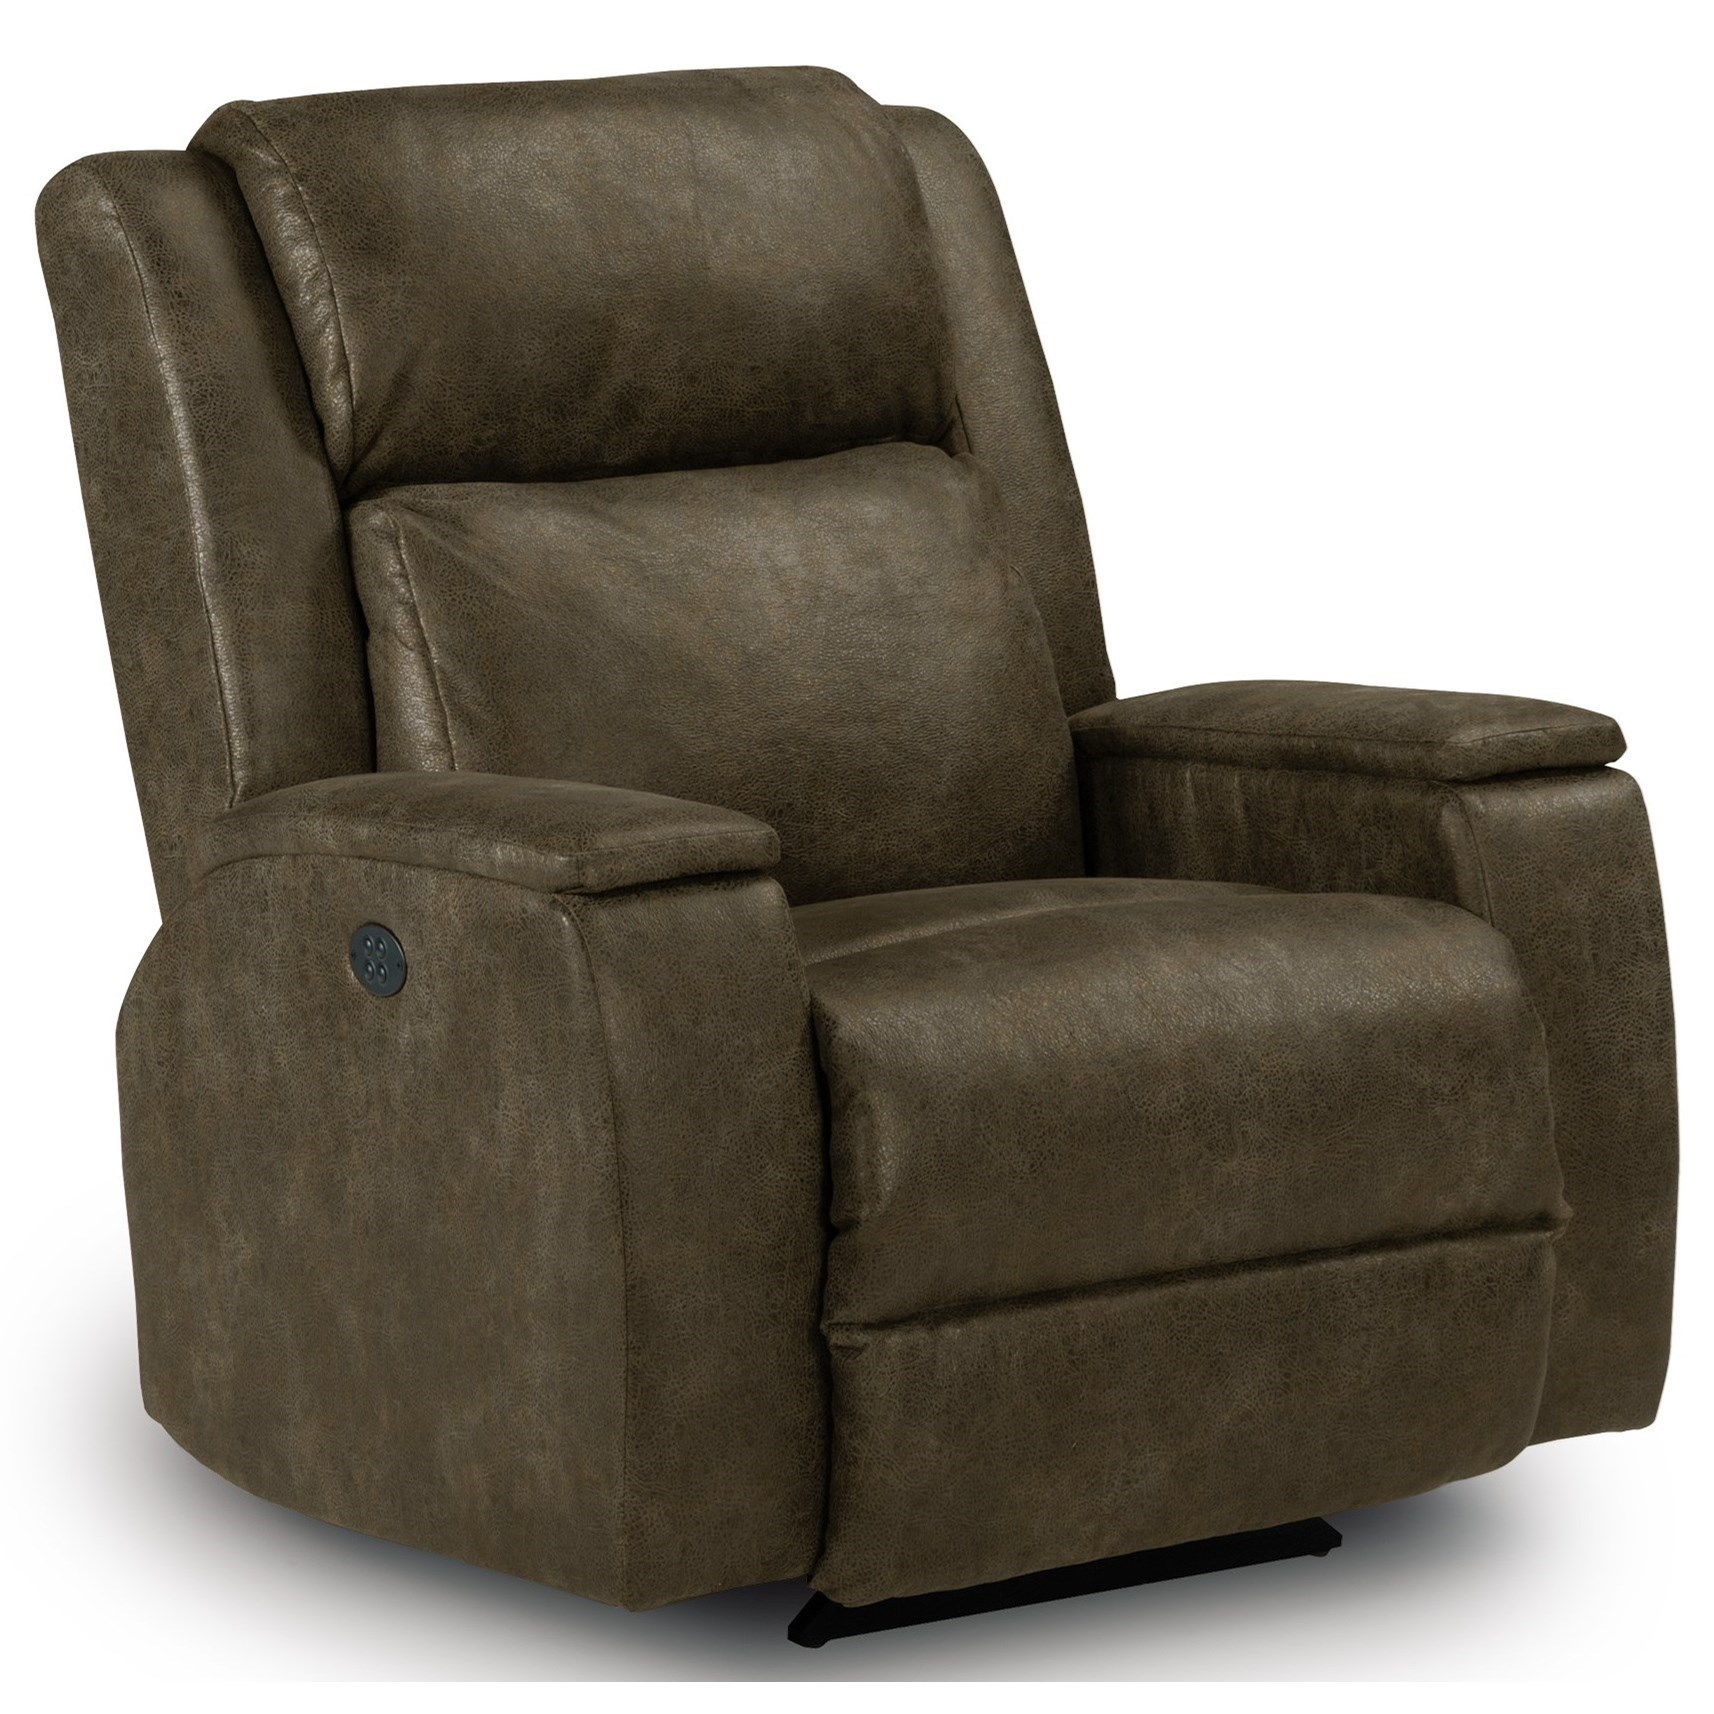 Best Home Furnishings Recliners Medium Colton Power